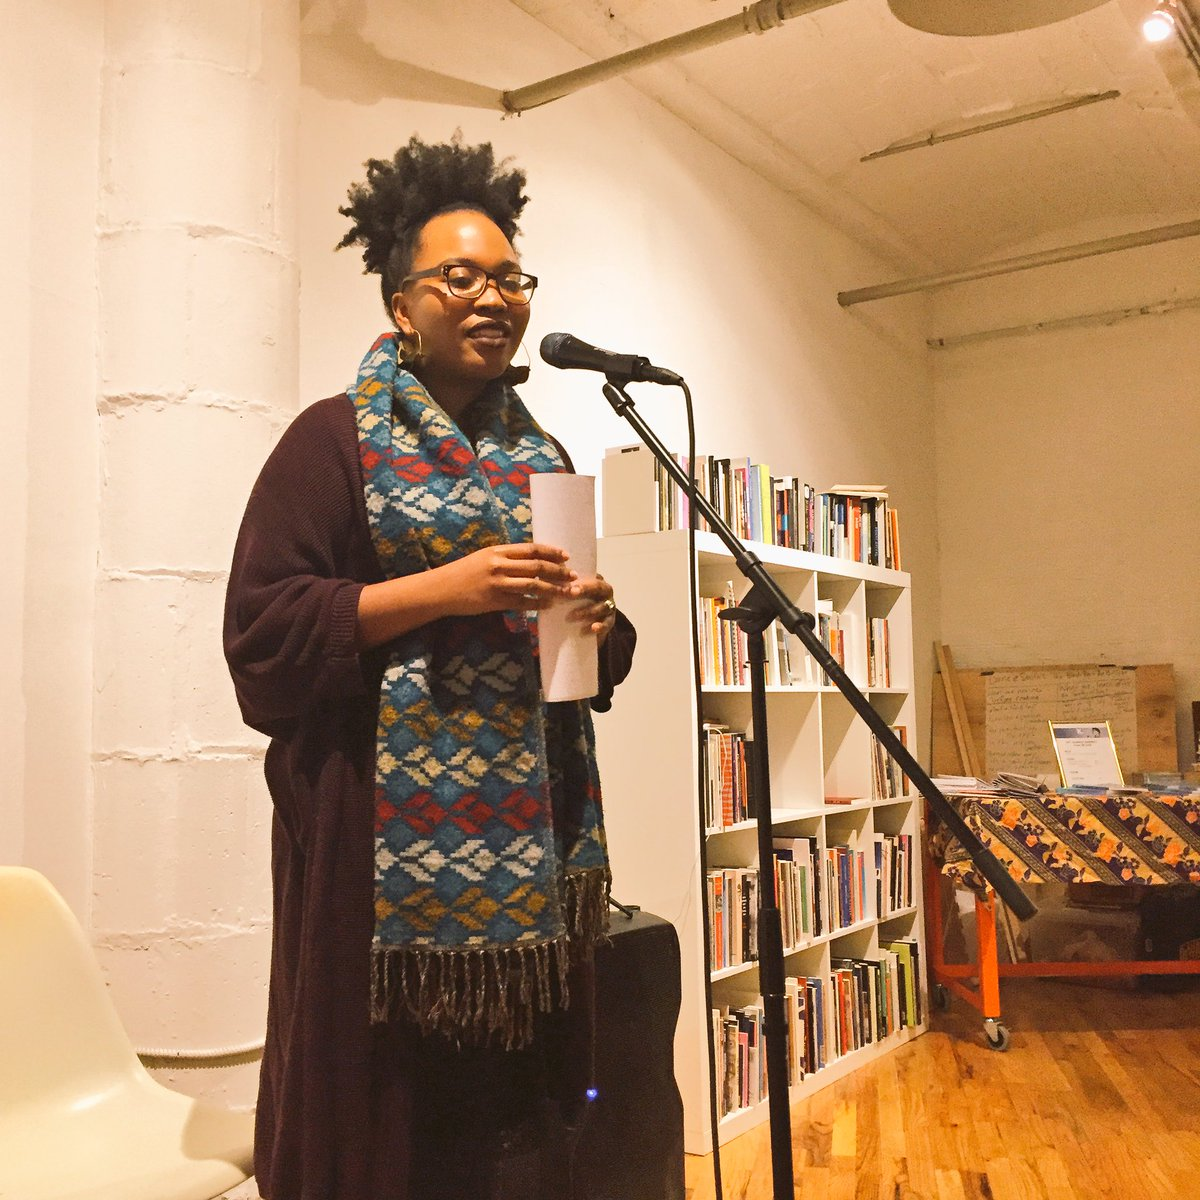 Listen to the reading I did at Berl's Poetry Shop  Here!